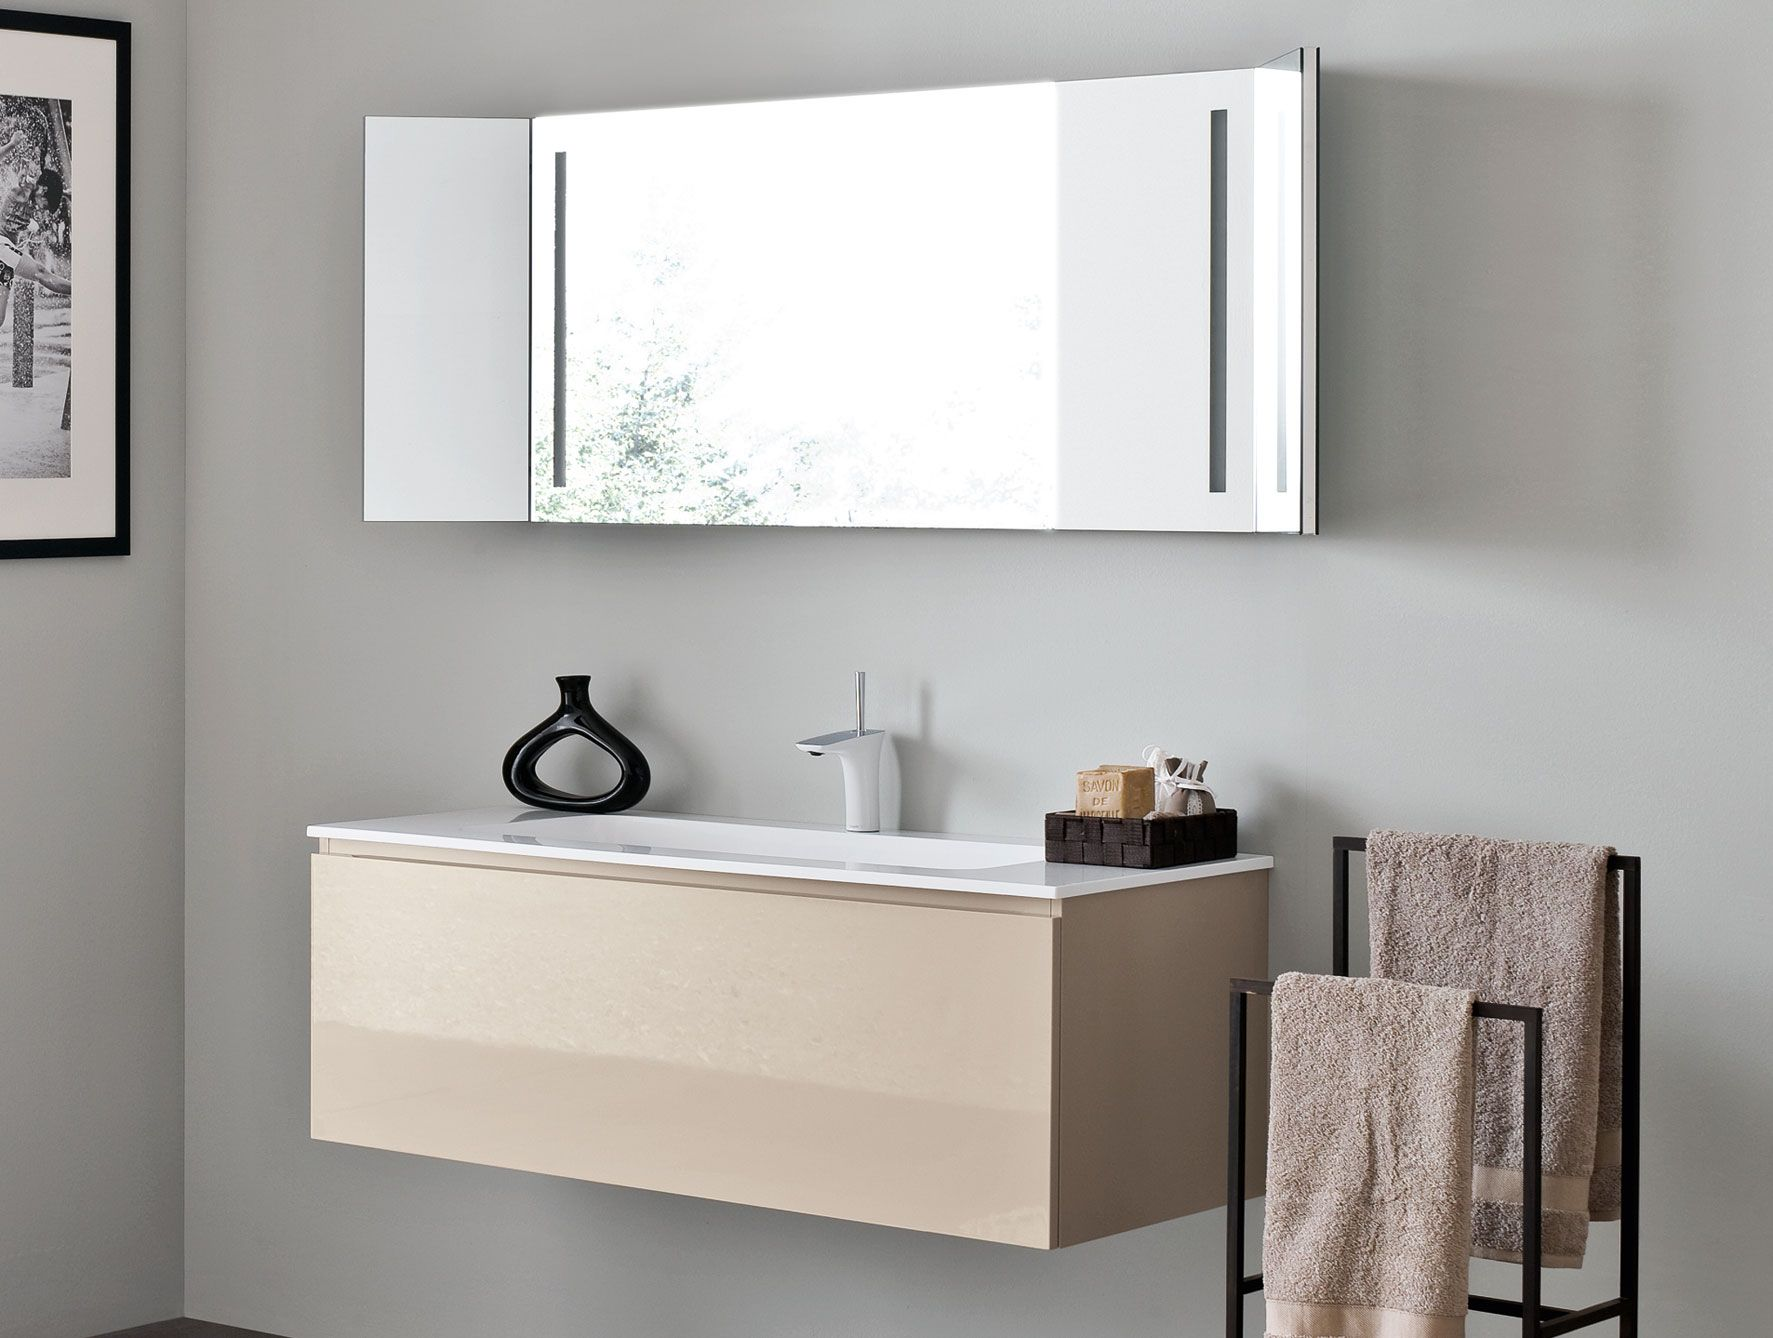 Custom Bathroom Vanities Montreal small-wall-mounted-bathroom-sinks | home decoration ideas